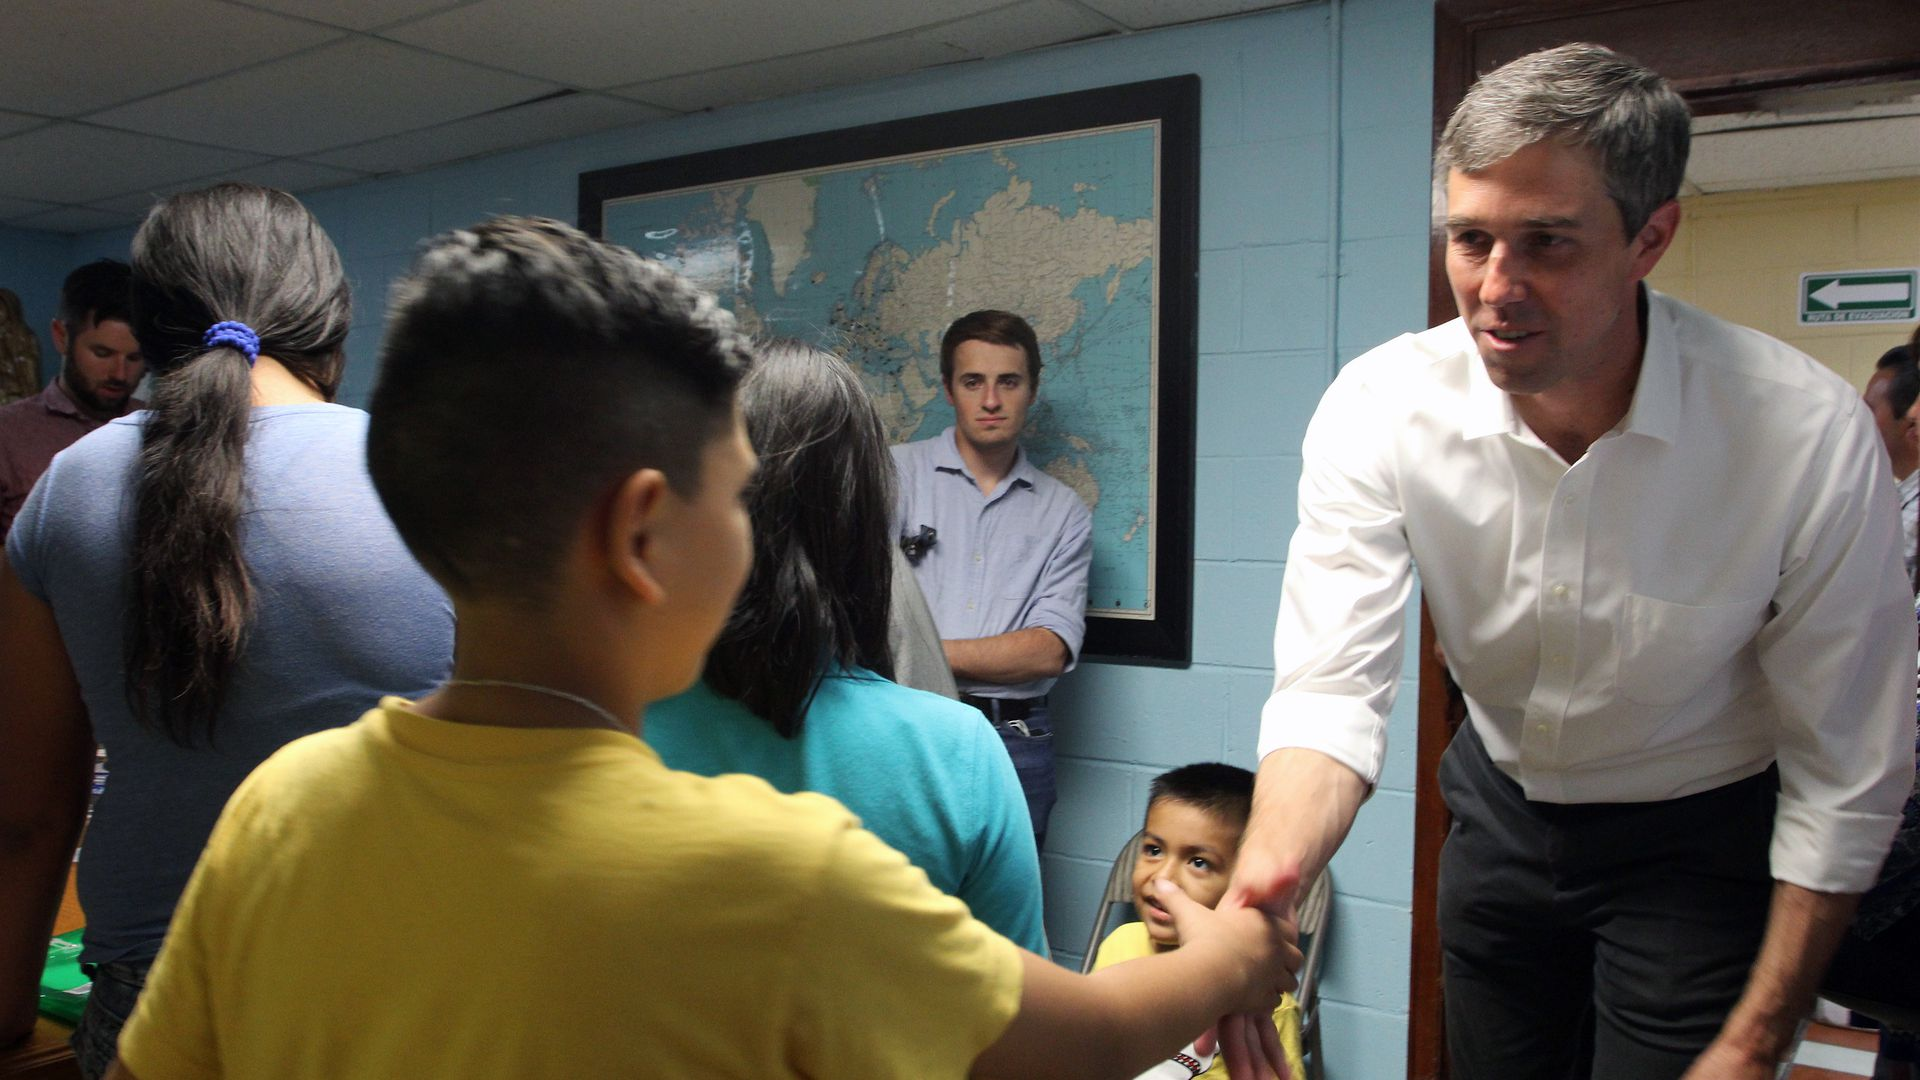 Presidential candidate hopeful for the Democratic Party, Beto O'Rourke meets a Central American migrant child during a visit to a shelter in Ciudad Juarez, Chihuahua State, Mexico on June 30, 2019.